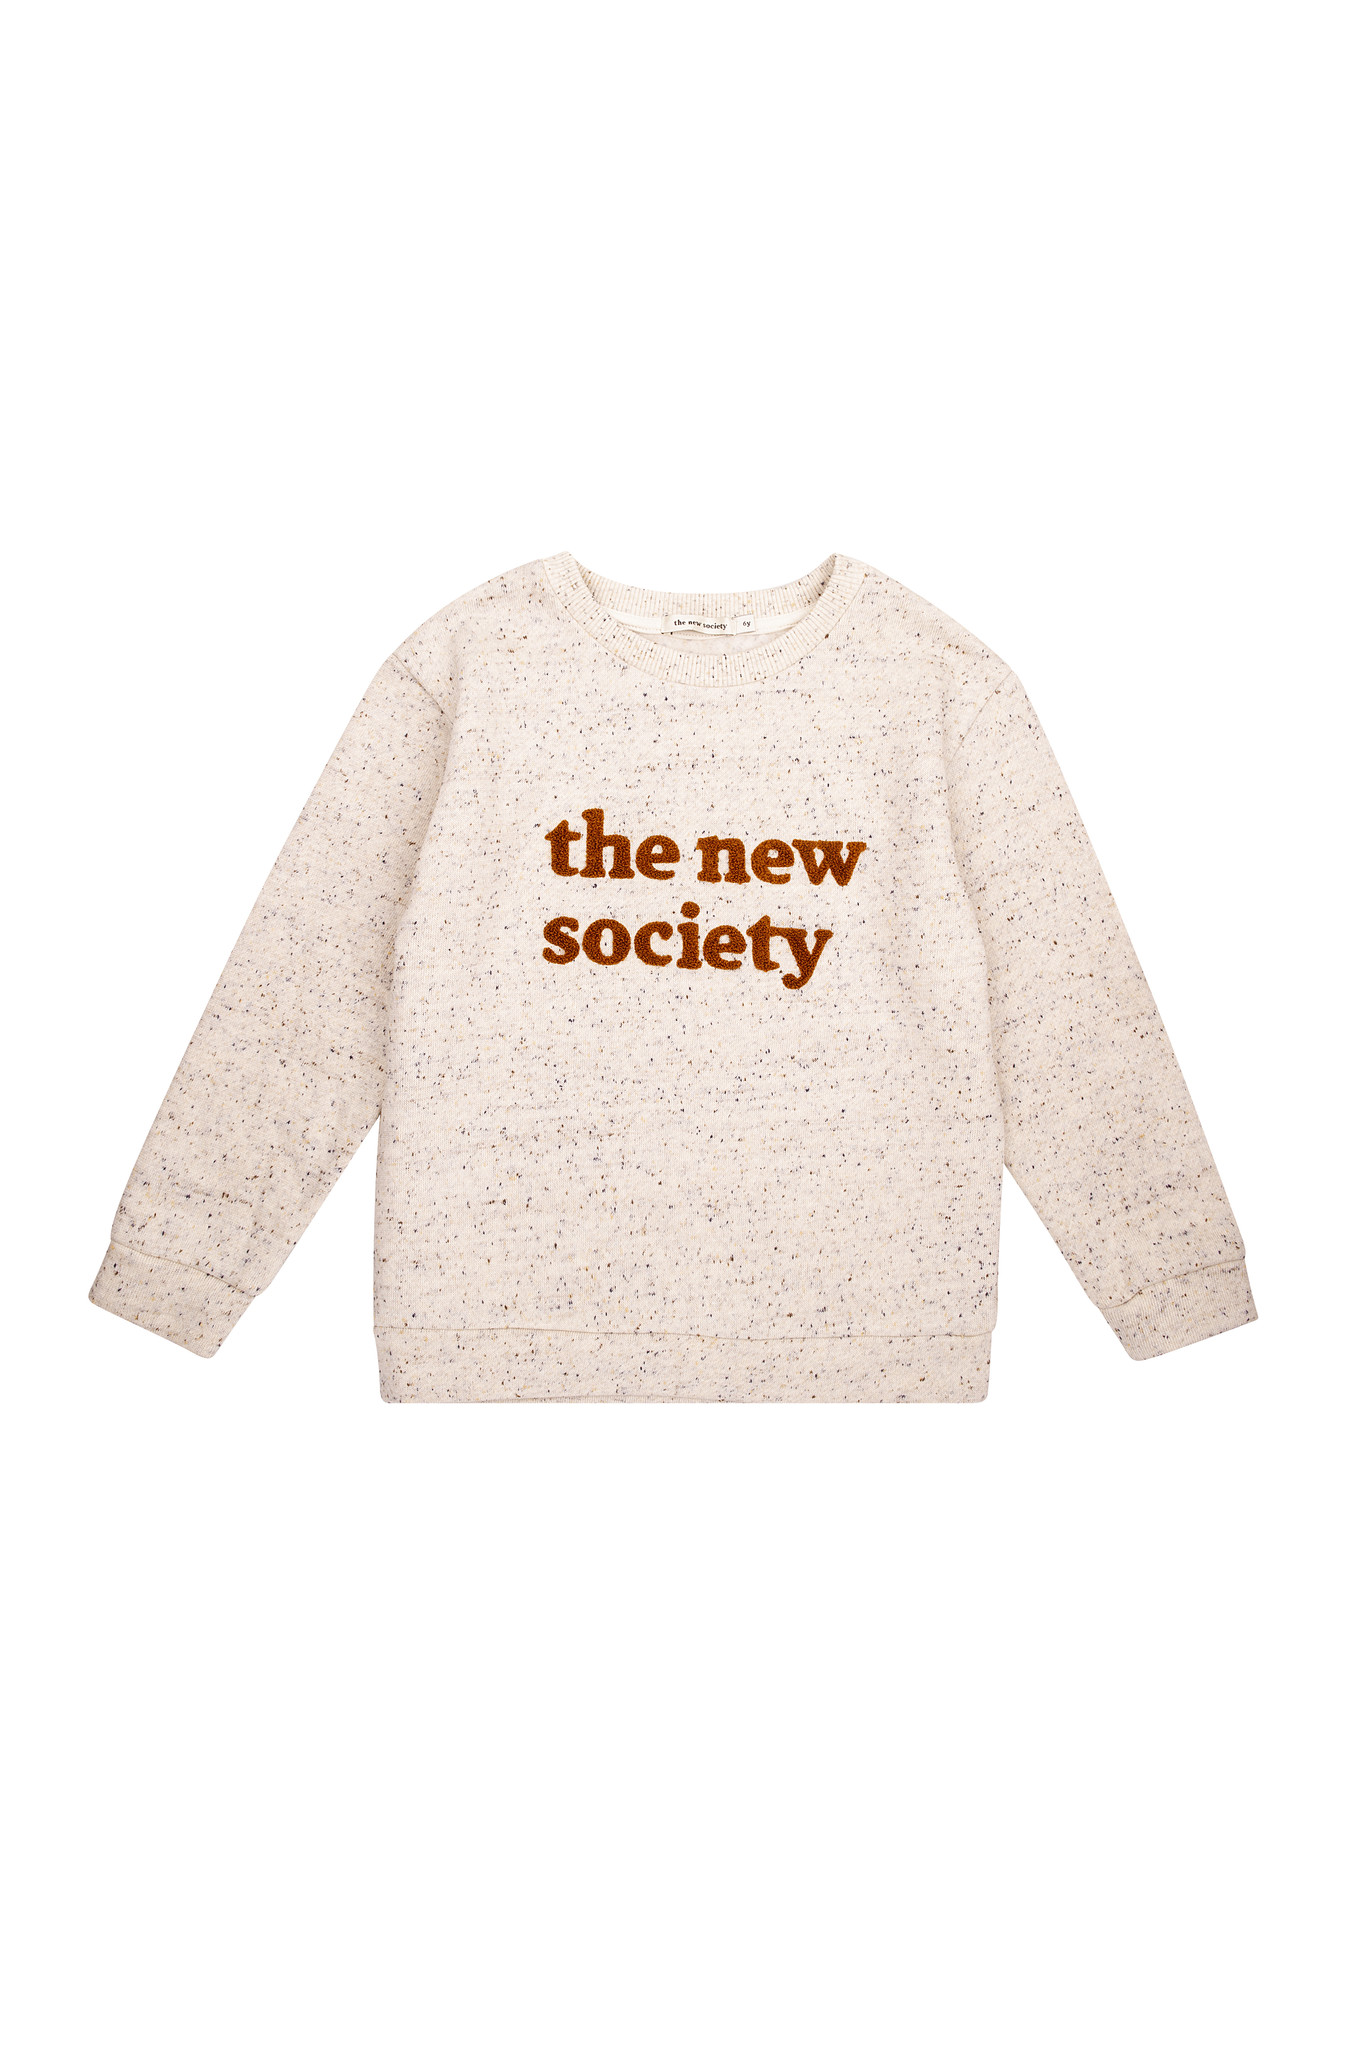 The New Society sweater - Natural-1